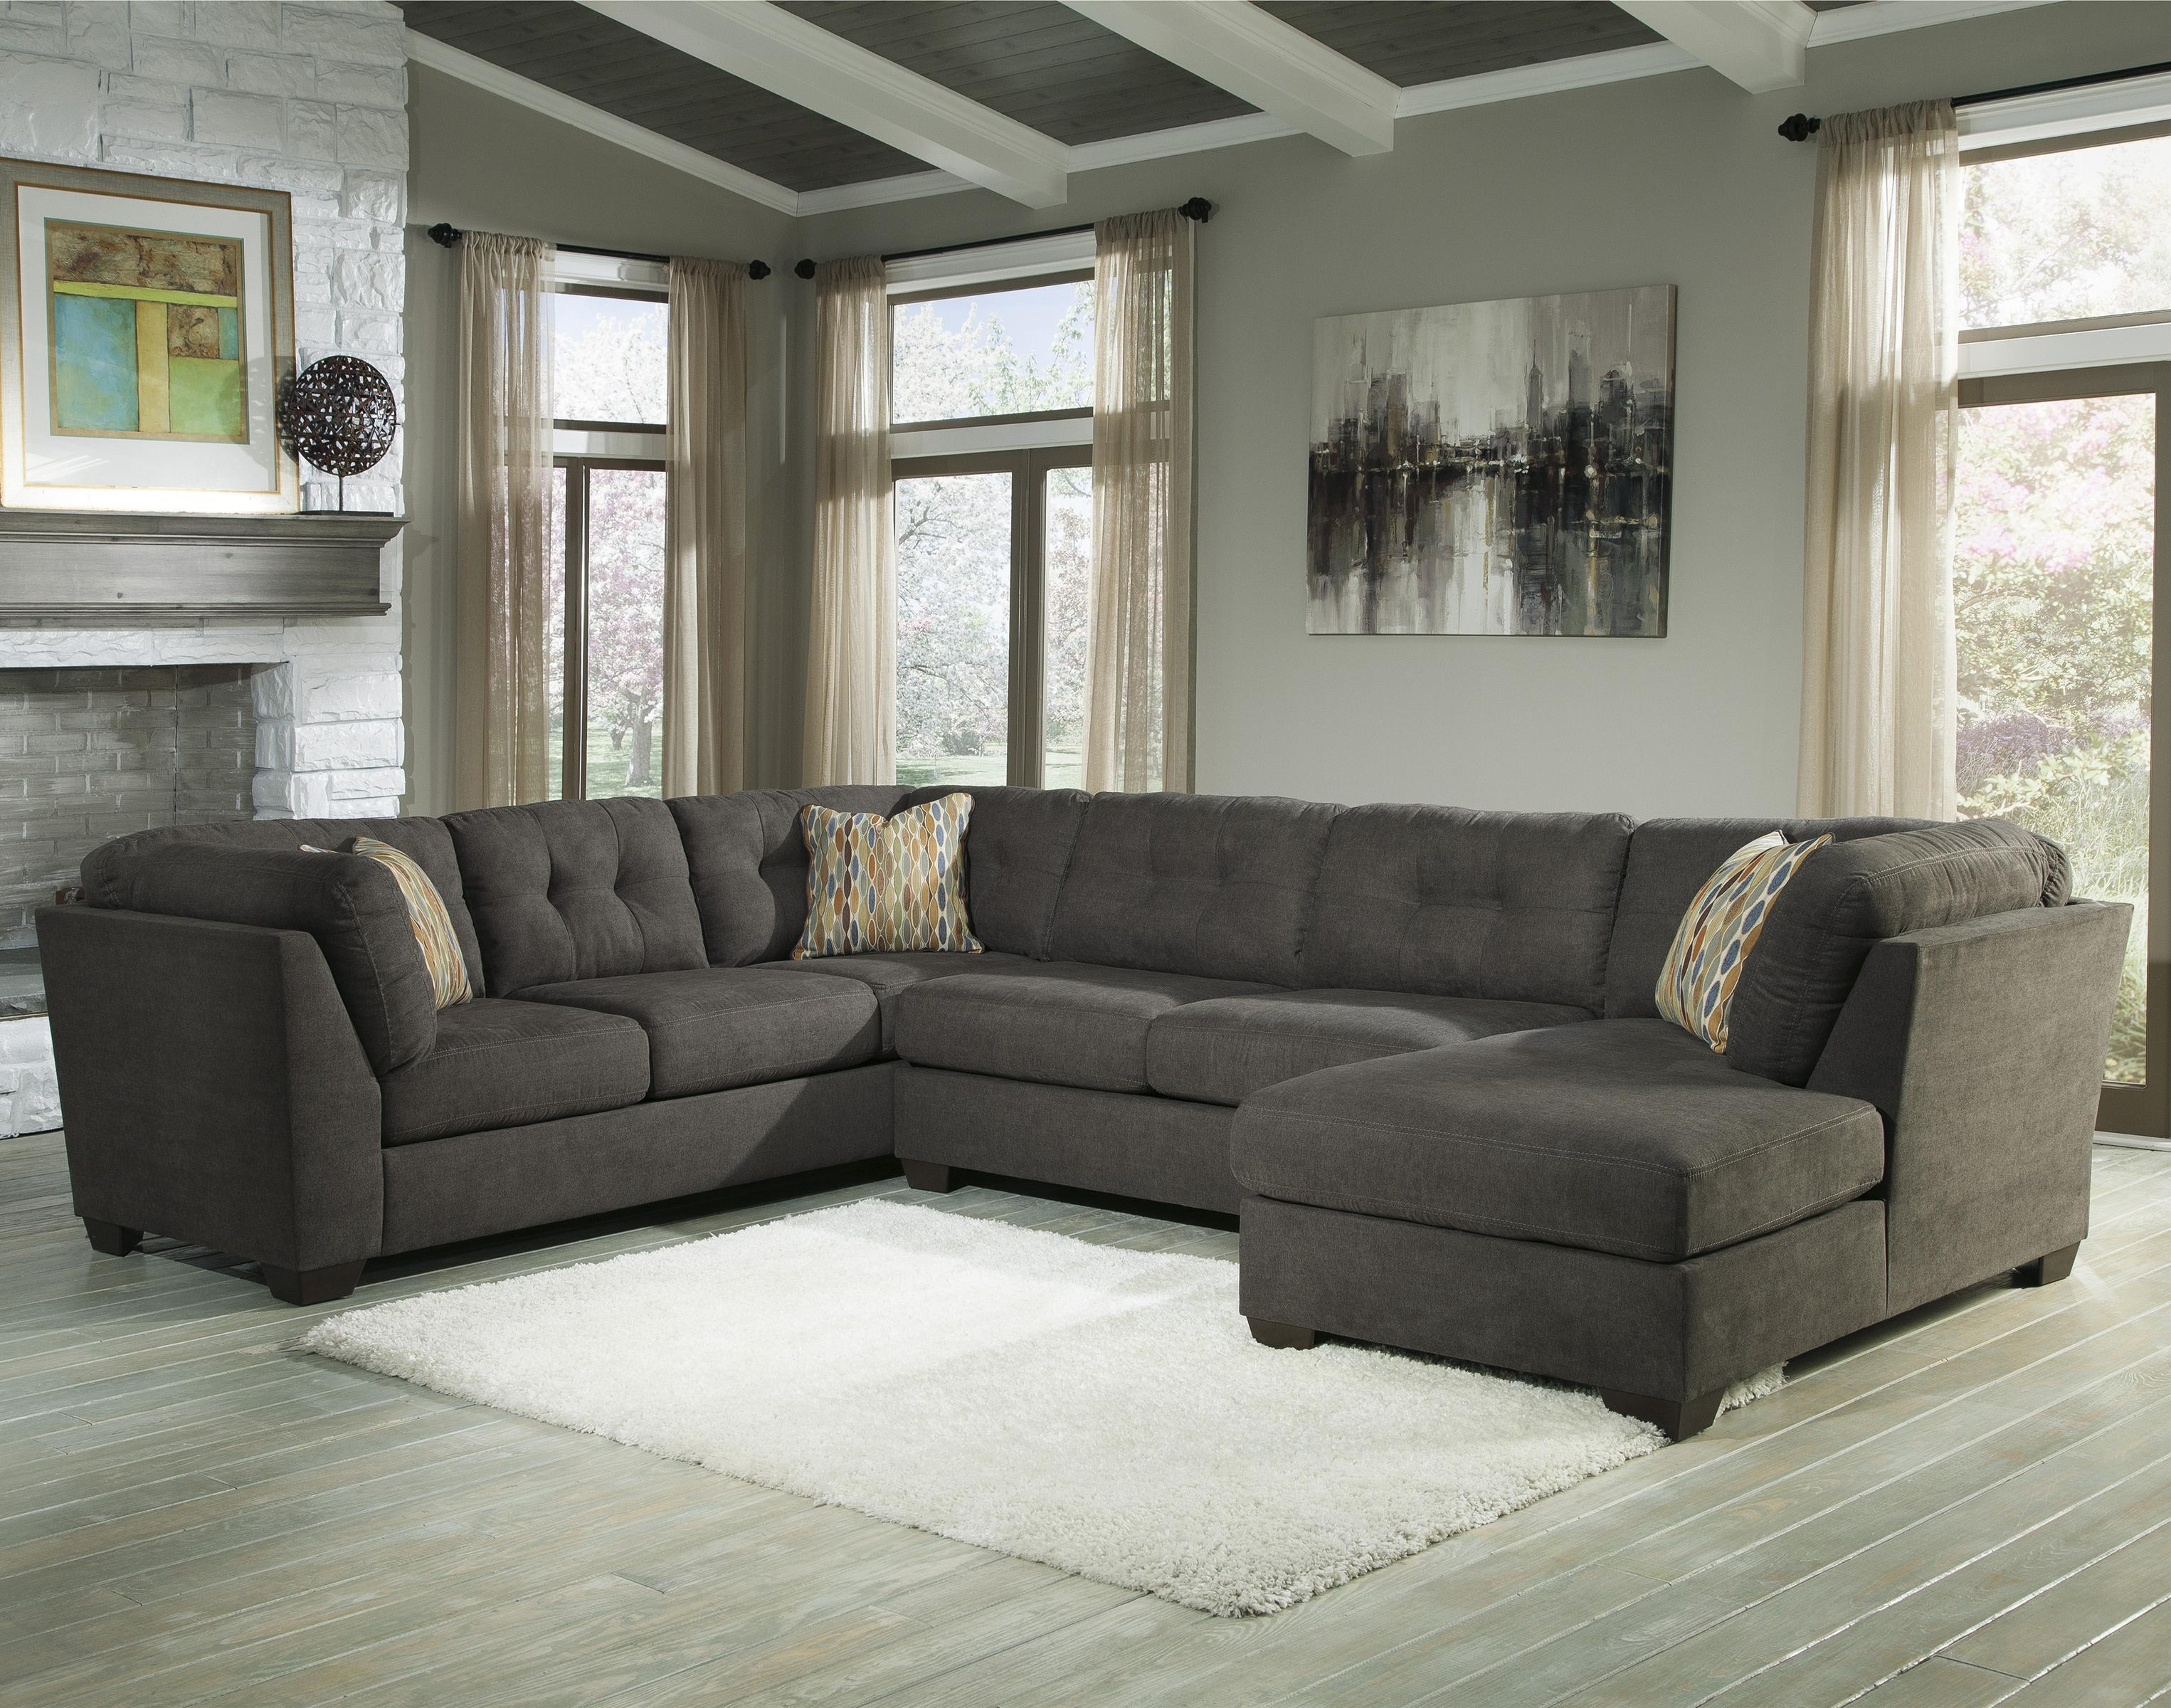 Benchcraft Delta City – Steel 3 Piece Modular Sectional With Right Throughout Ashley Curved Sectional (Image 3 of 15)